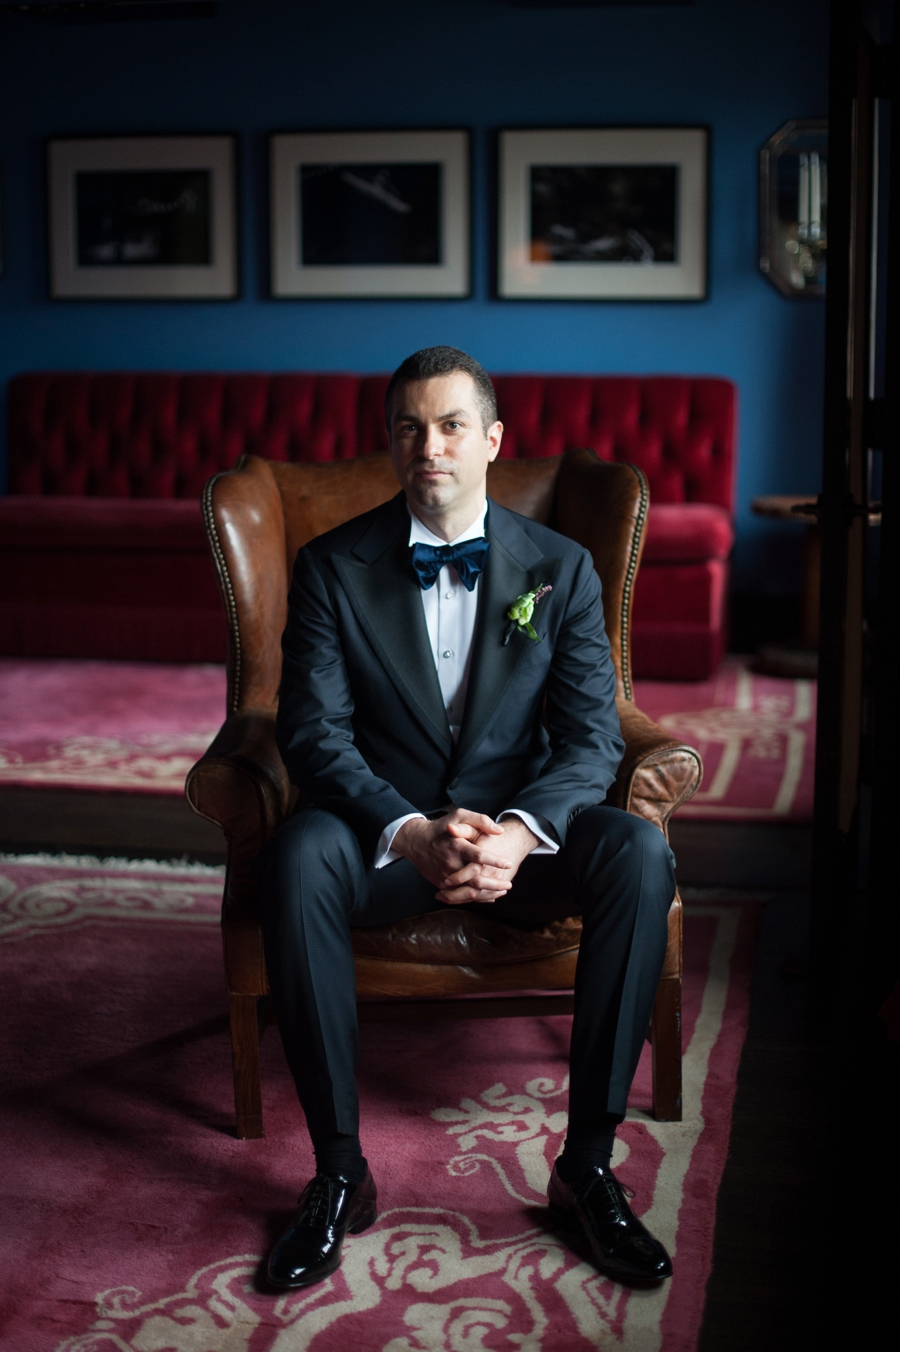 Gramercy_Park_Hotel_NYC_Wedding_MC_0010.jpg